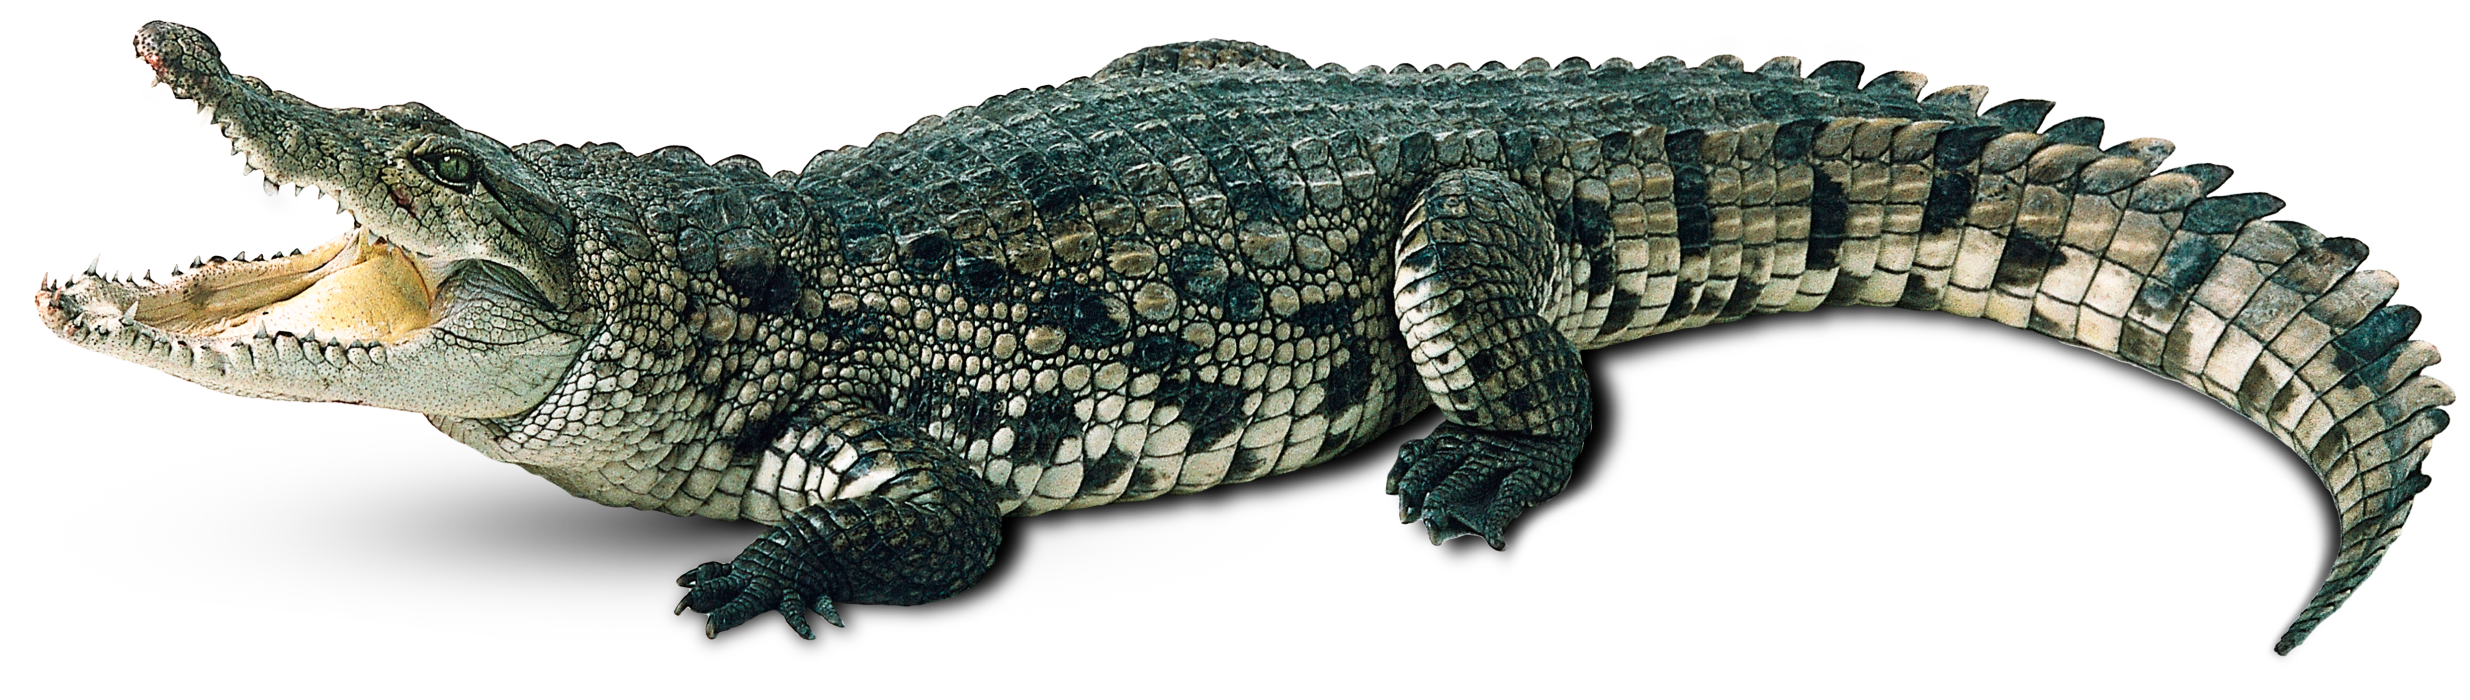 Clipart crocodile with a basketball in its mouth clip art free library Crocodile-Free-PNG-Image.png (2470×700) | animals | Pinterest ... clip art free library